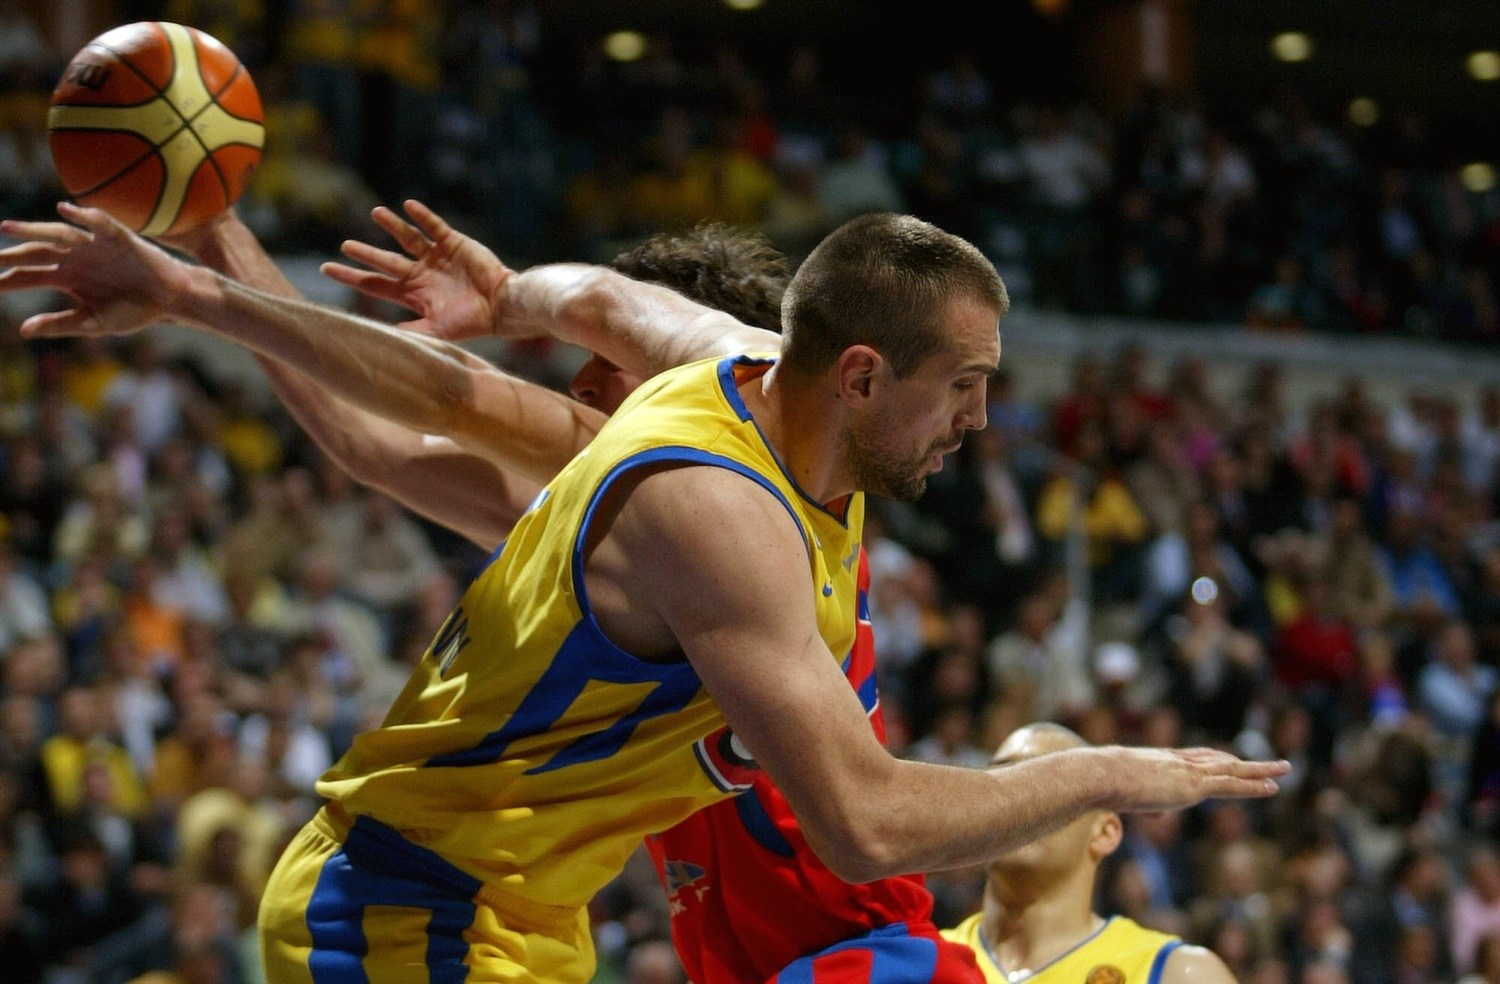 Nikola Vujcic - Maccabi Elite - Final Four Prague 2006 - EB19